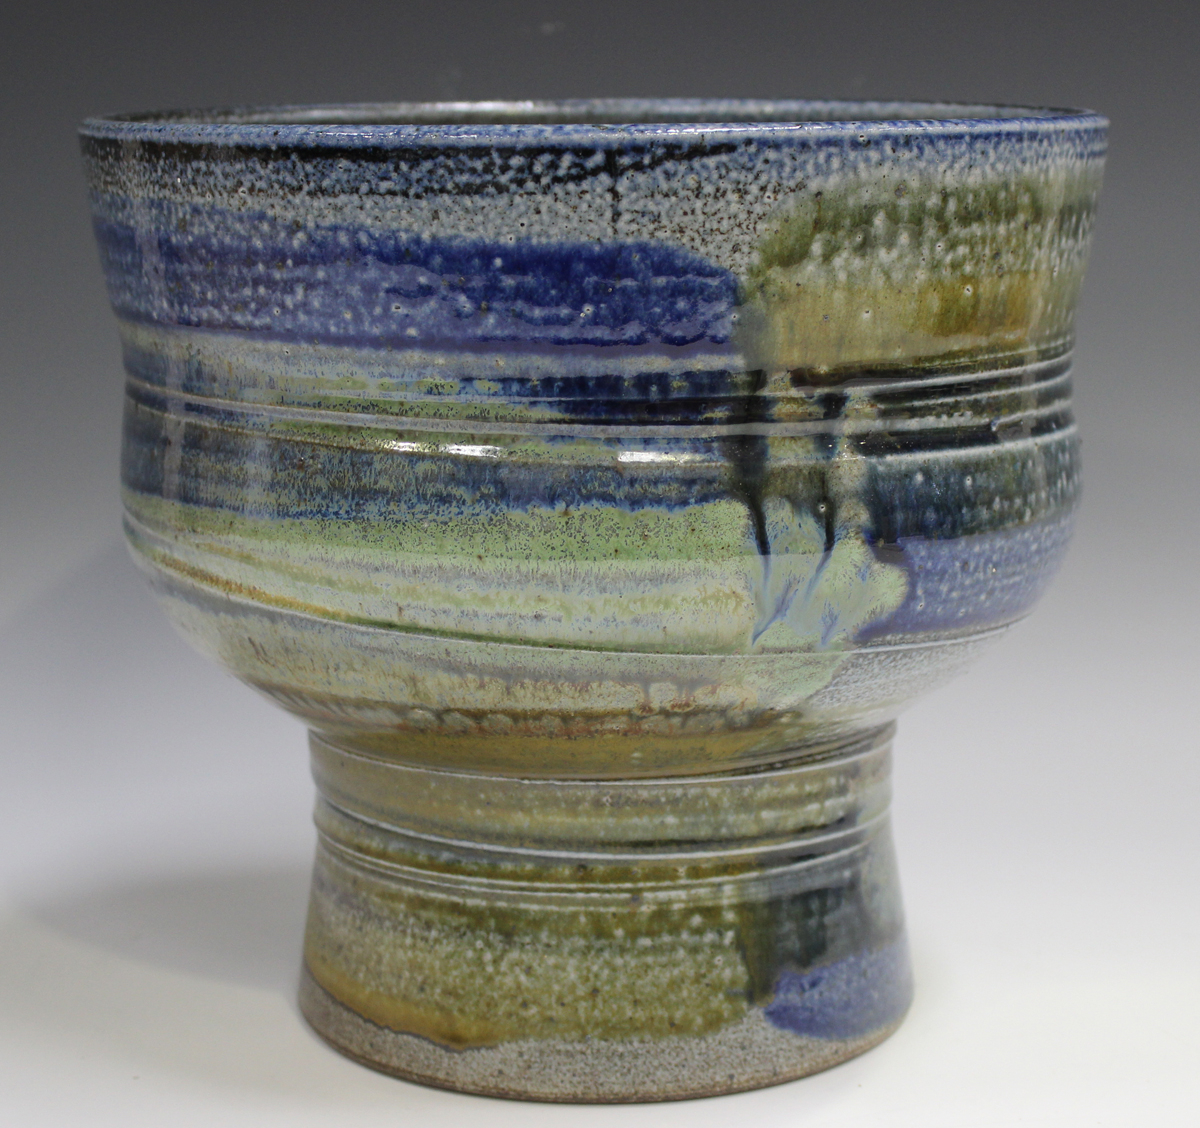 A large Jane Hamlyn studio pottery salt glazed footed bowl, decorated in shades of blue, green and